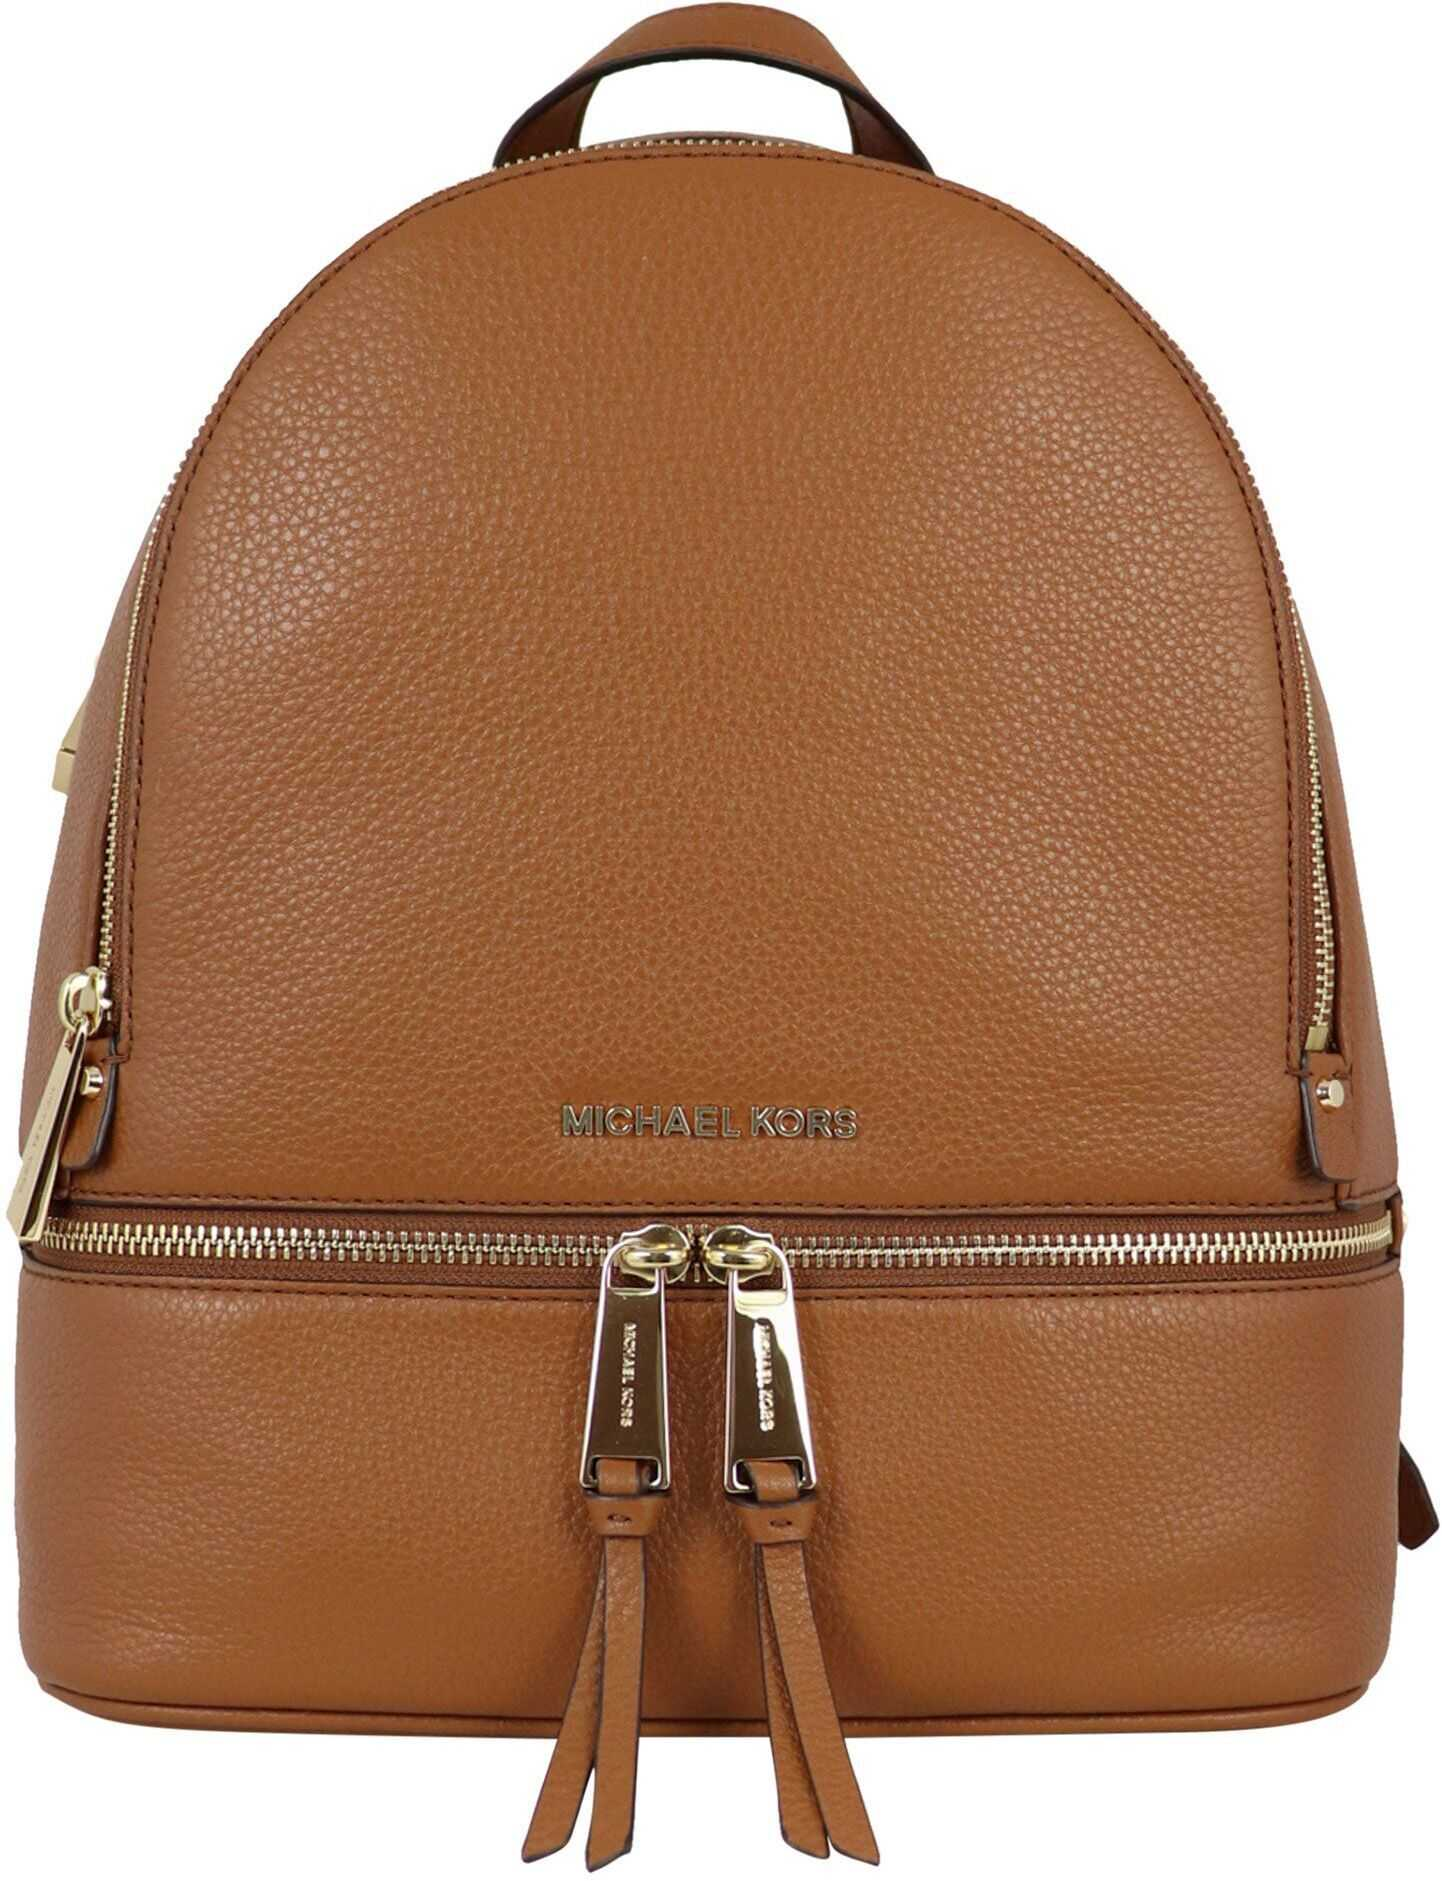 Michael Kors Leather Backpack BROWN